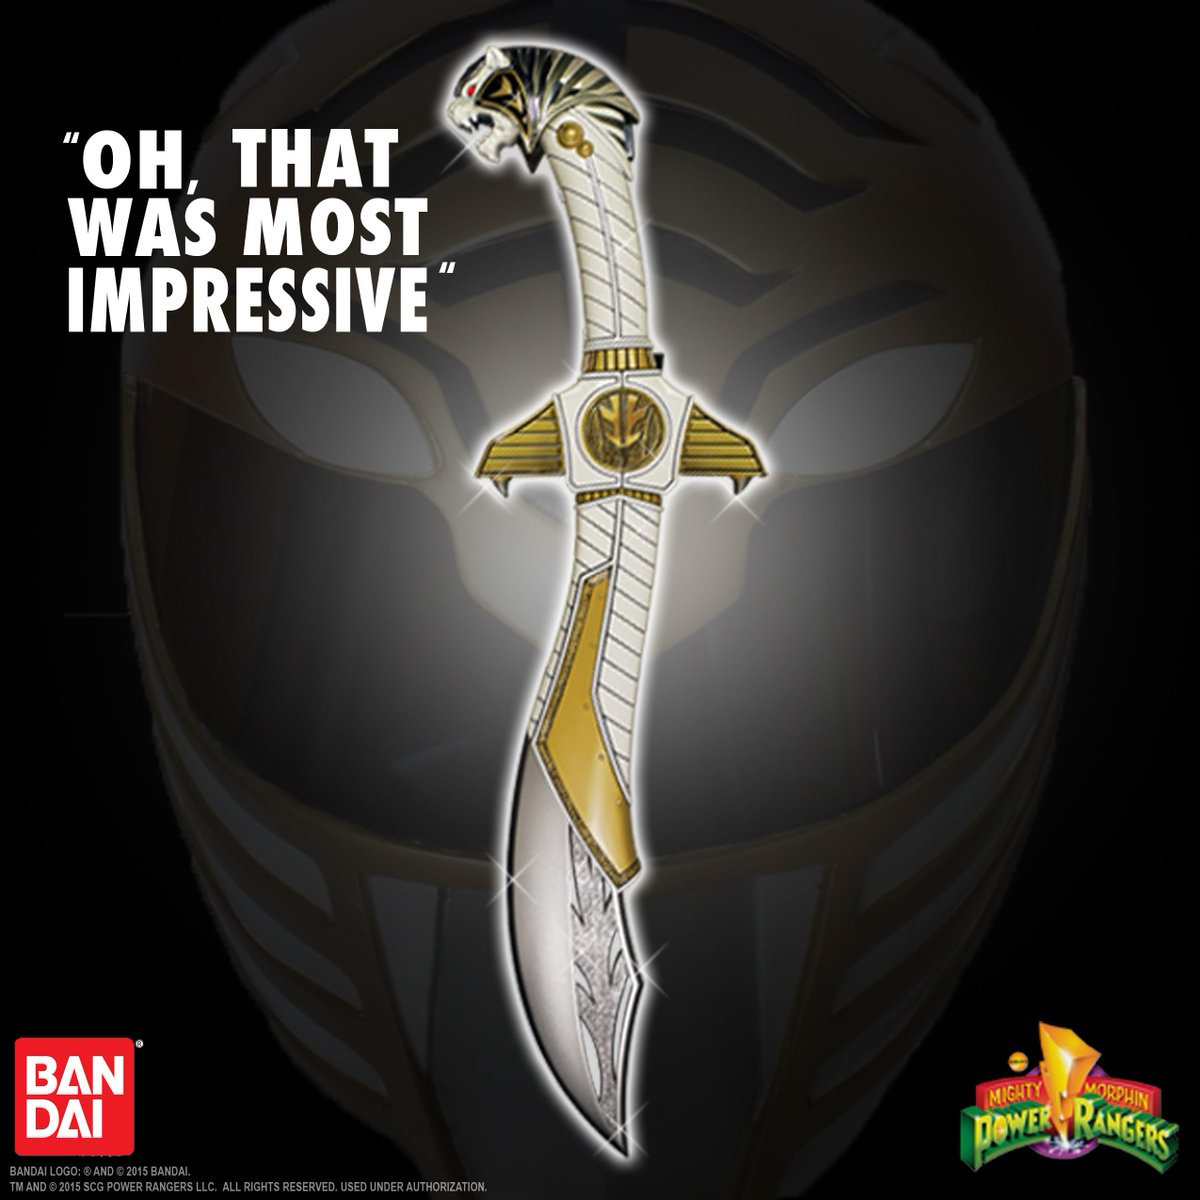 Bandai proudly introduces the re-imagined SABA… http://t.co/Khjpgm7OTG #PowerRangers #BandaiAmerica #ItsMorphinTime http://t.co/cvqptxgH48